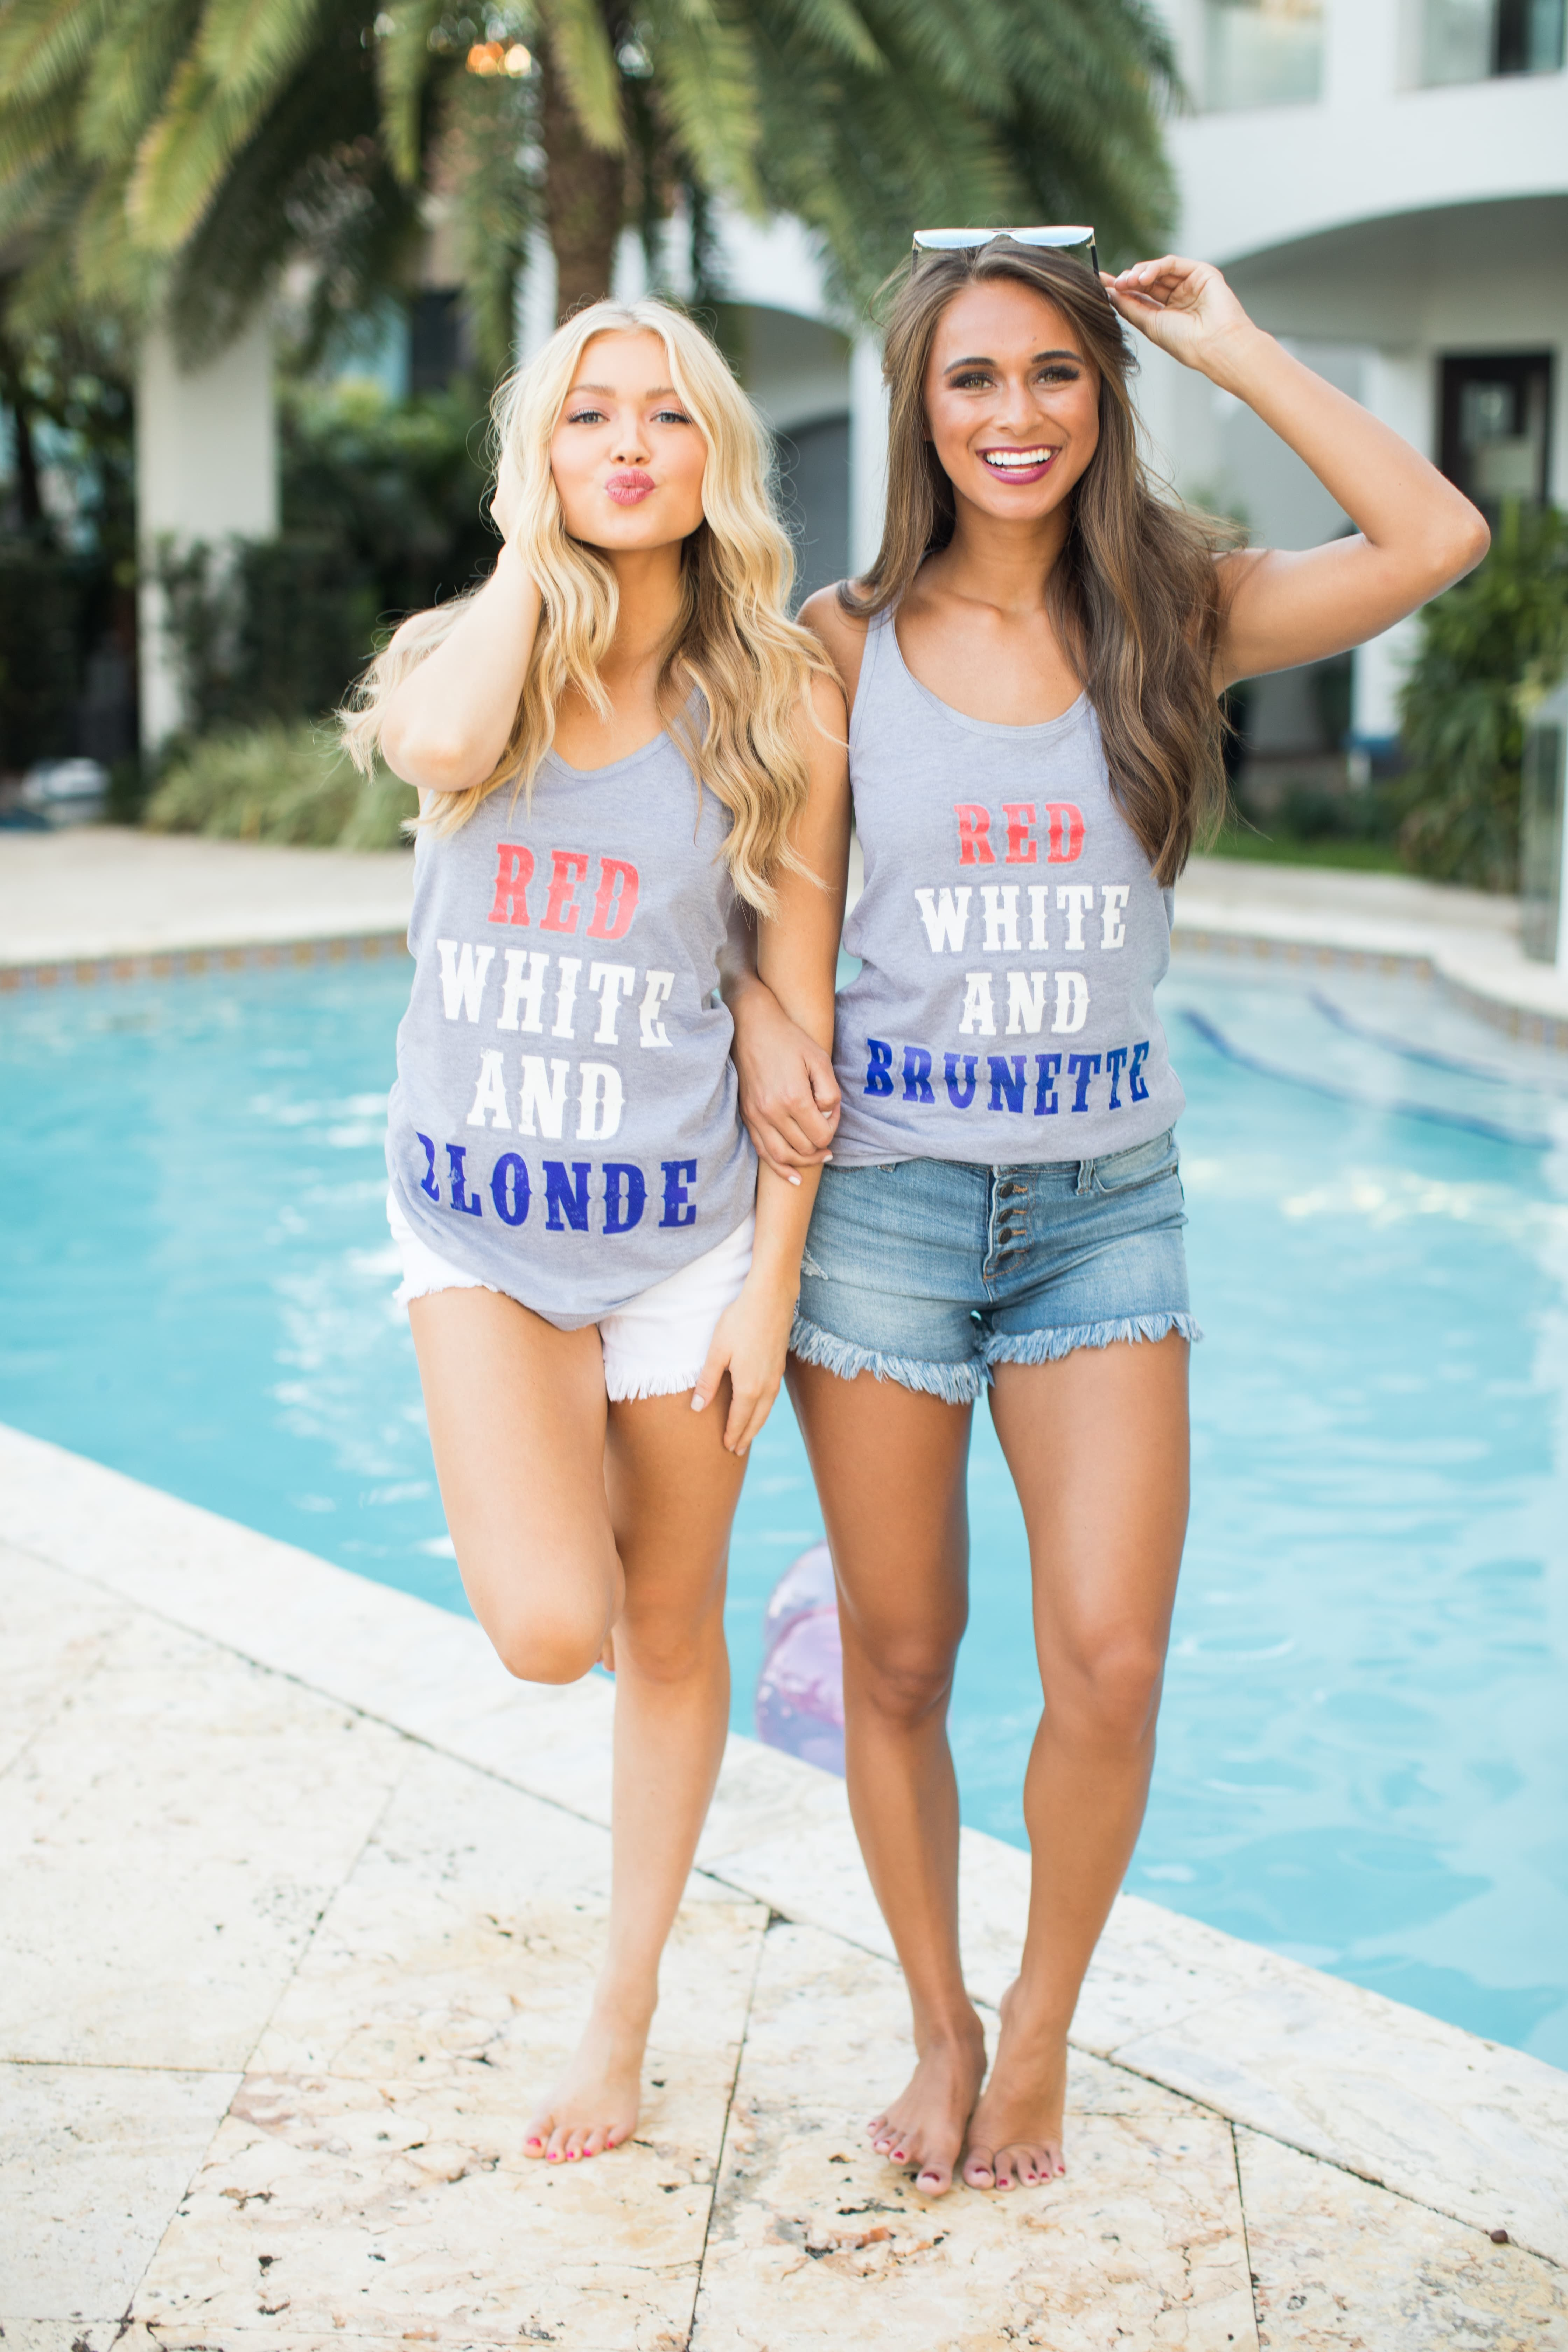 Red White And Blonde Graphic Tank Blonde Brunette Best Friends